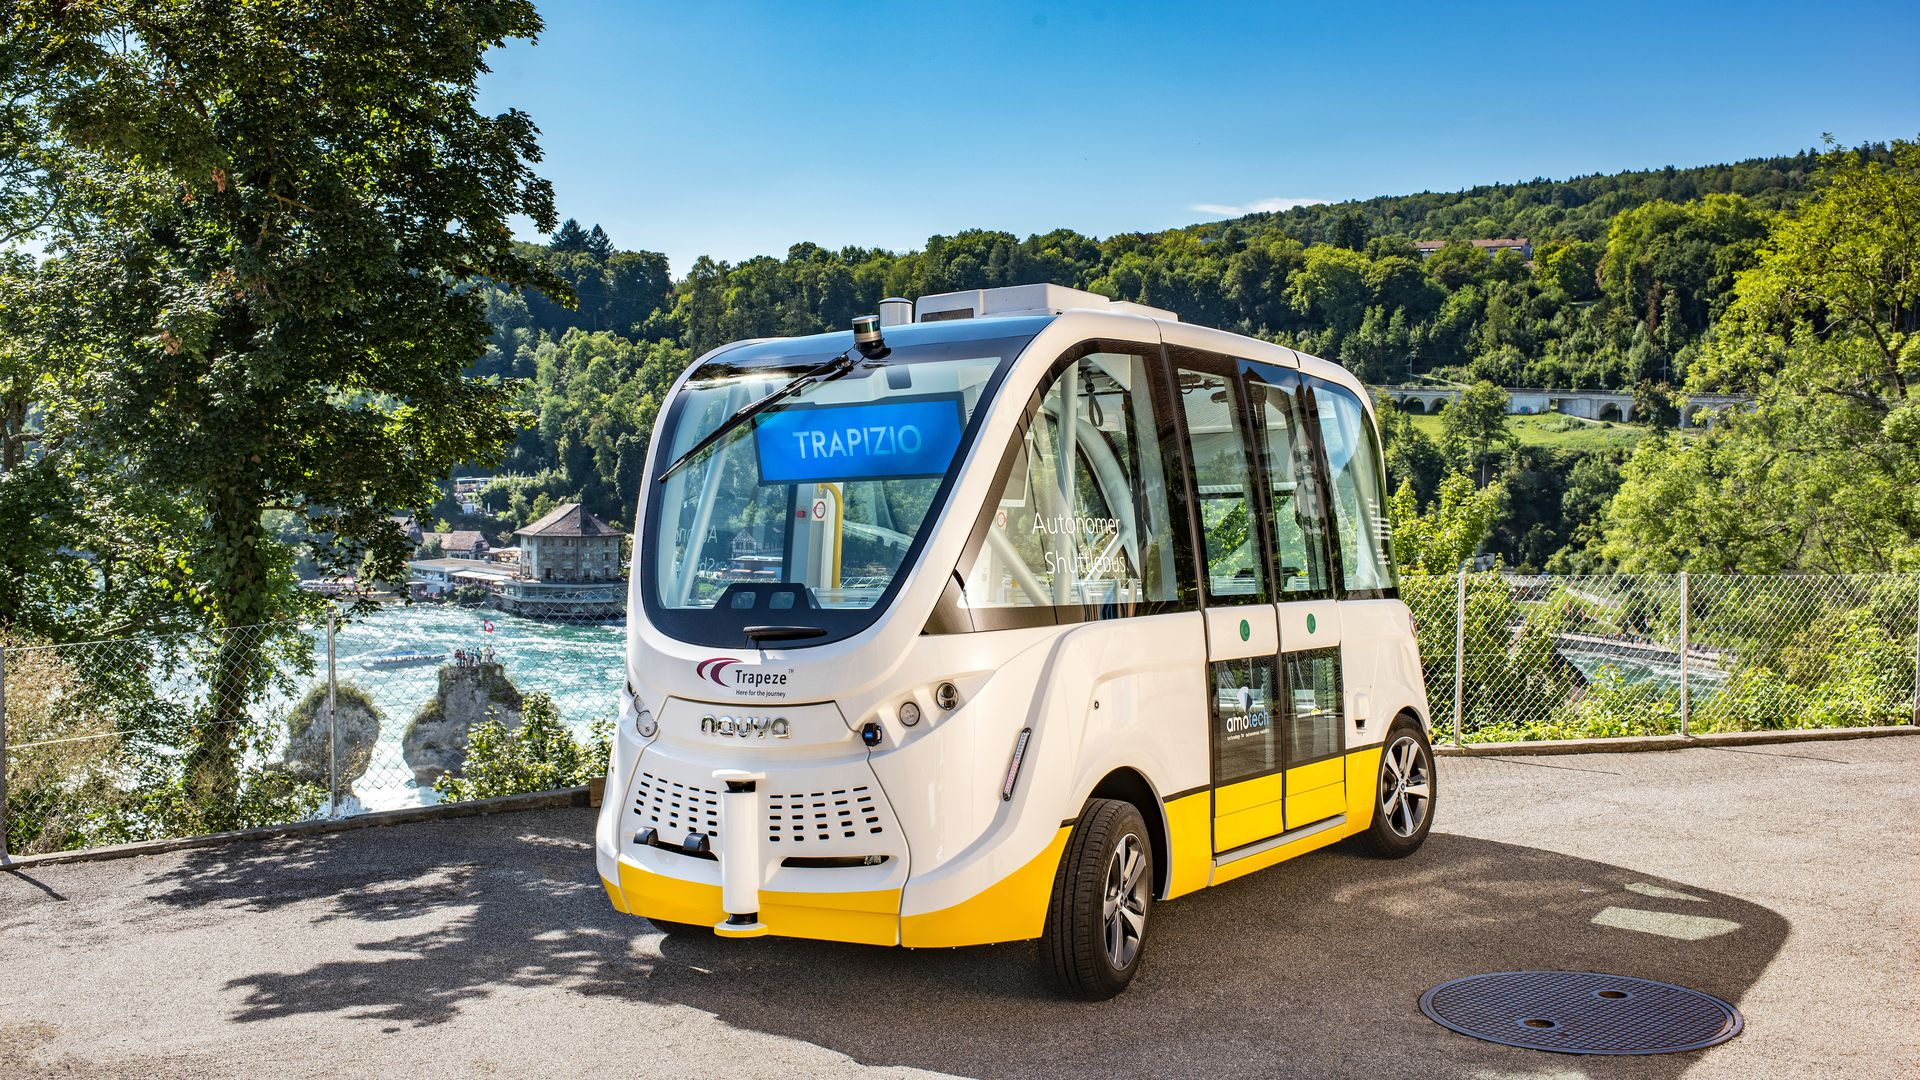 Swiss town's self-driving bus shows promise for AVs in public transit